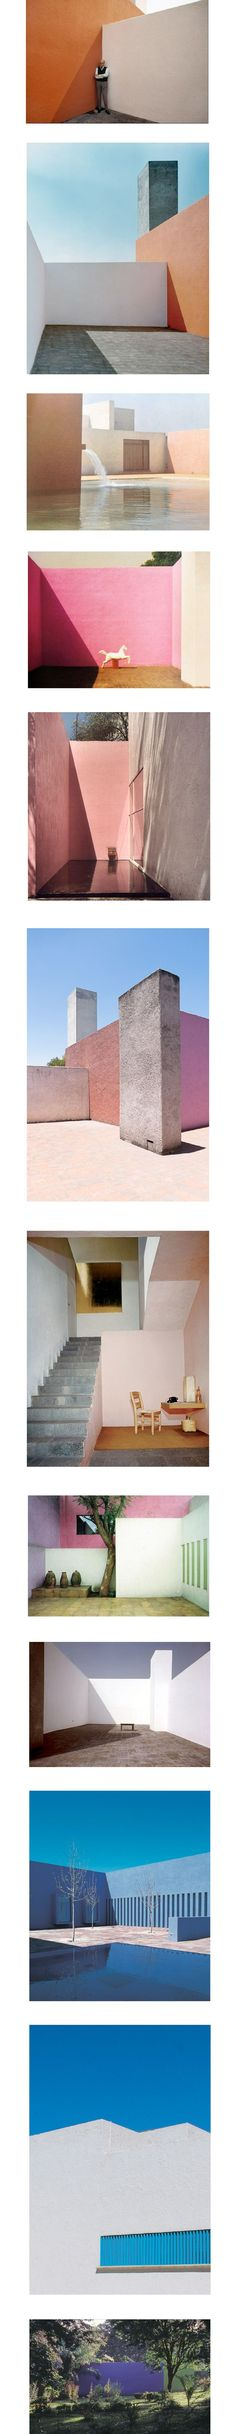 Luis Barragan, architecte mexicain (1902-1988)